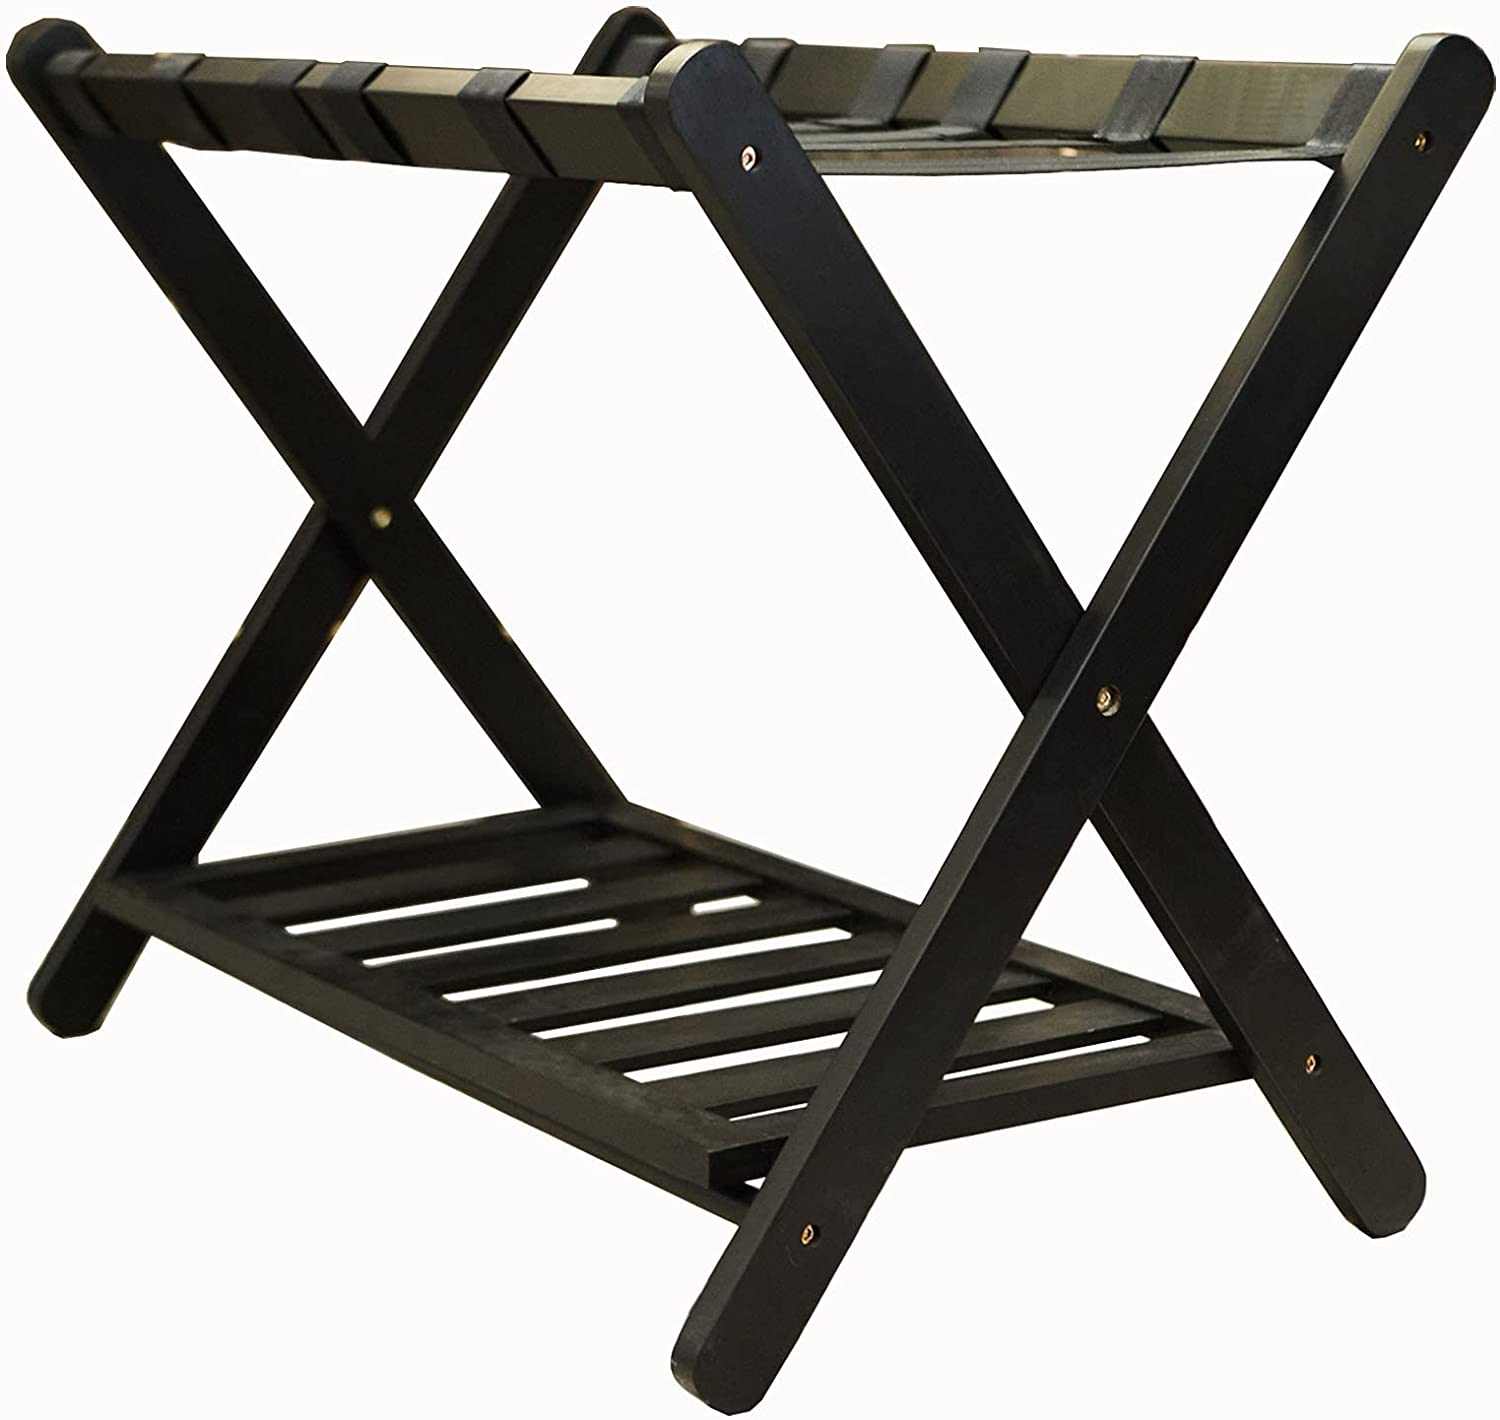 Unbrands Luggage Rack Max 84% OFF Folding Bedroo shop for with Shelf